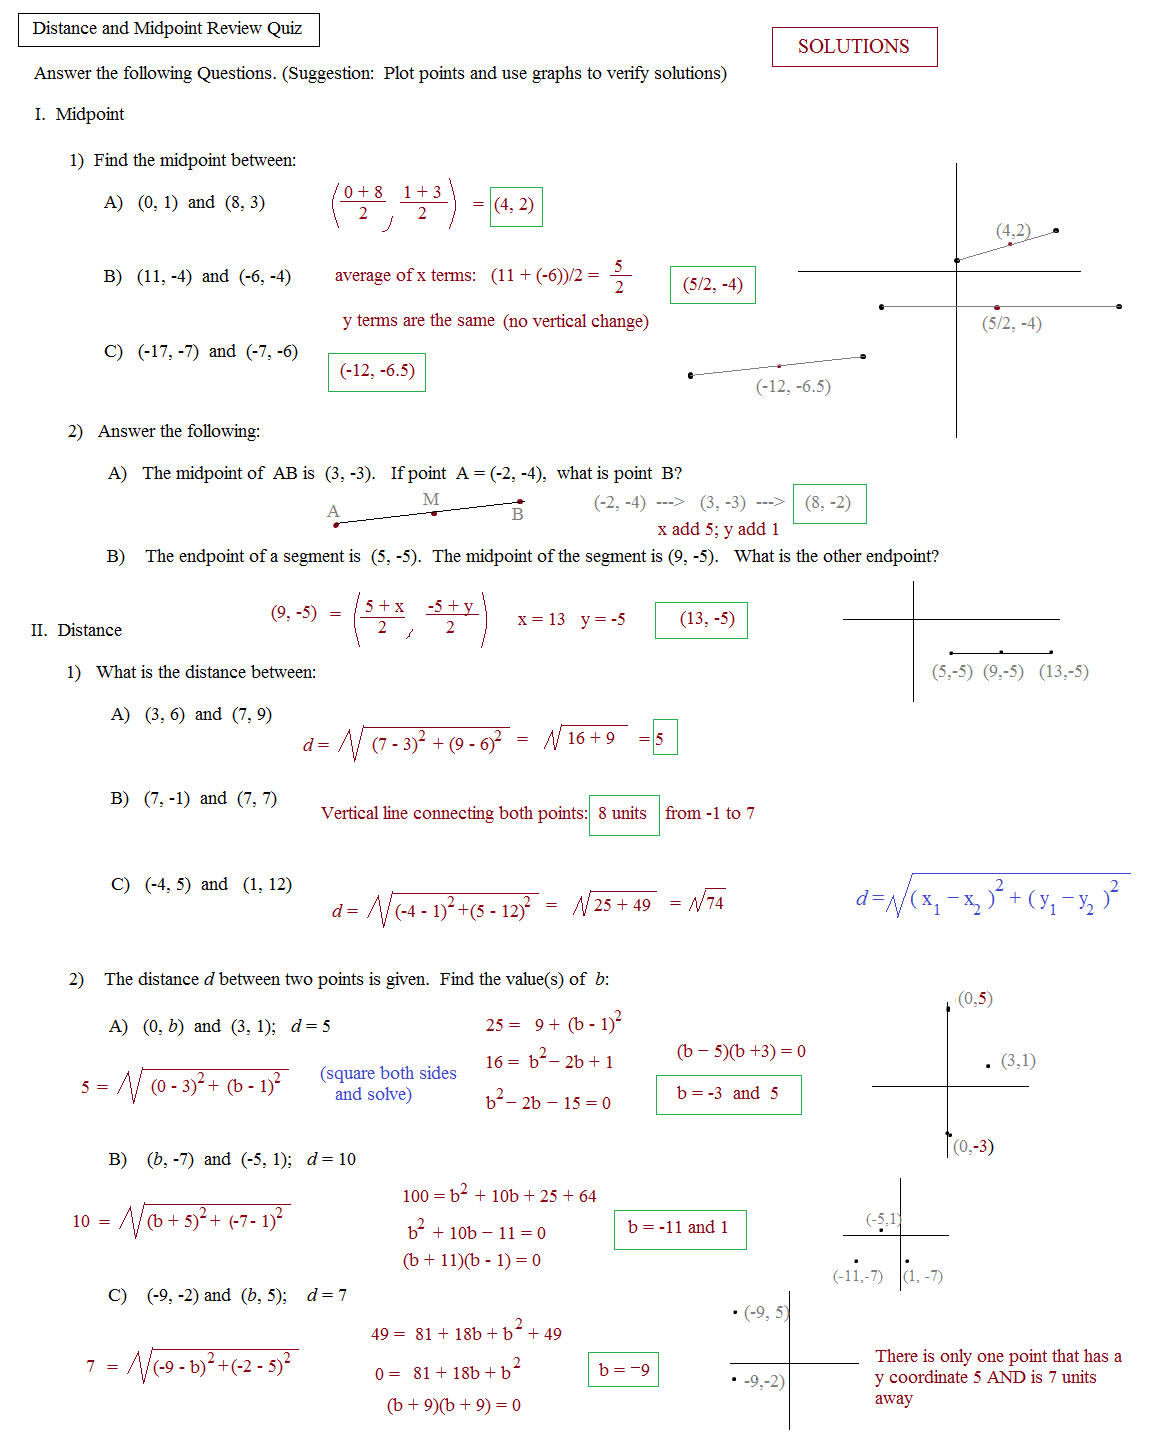 Worksheets Distance Formula Word Problems With Solutions math plane midpoint and distance geometry review quiz 1 solutions